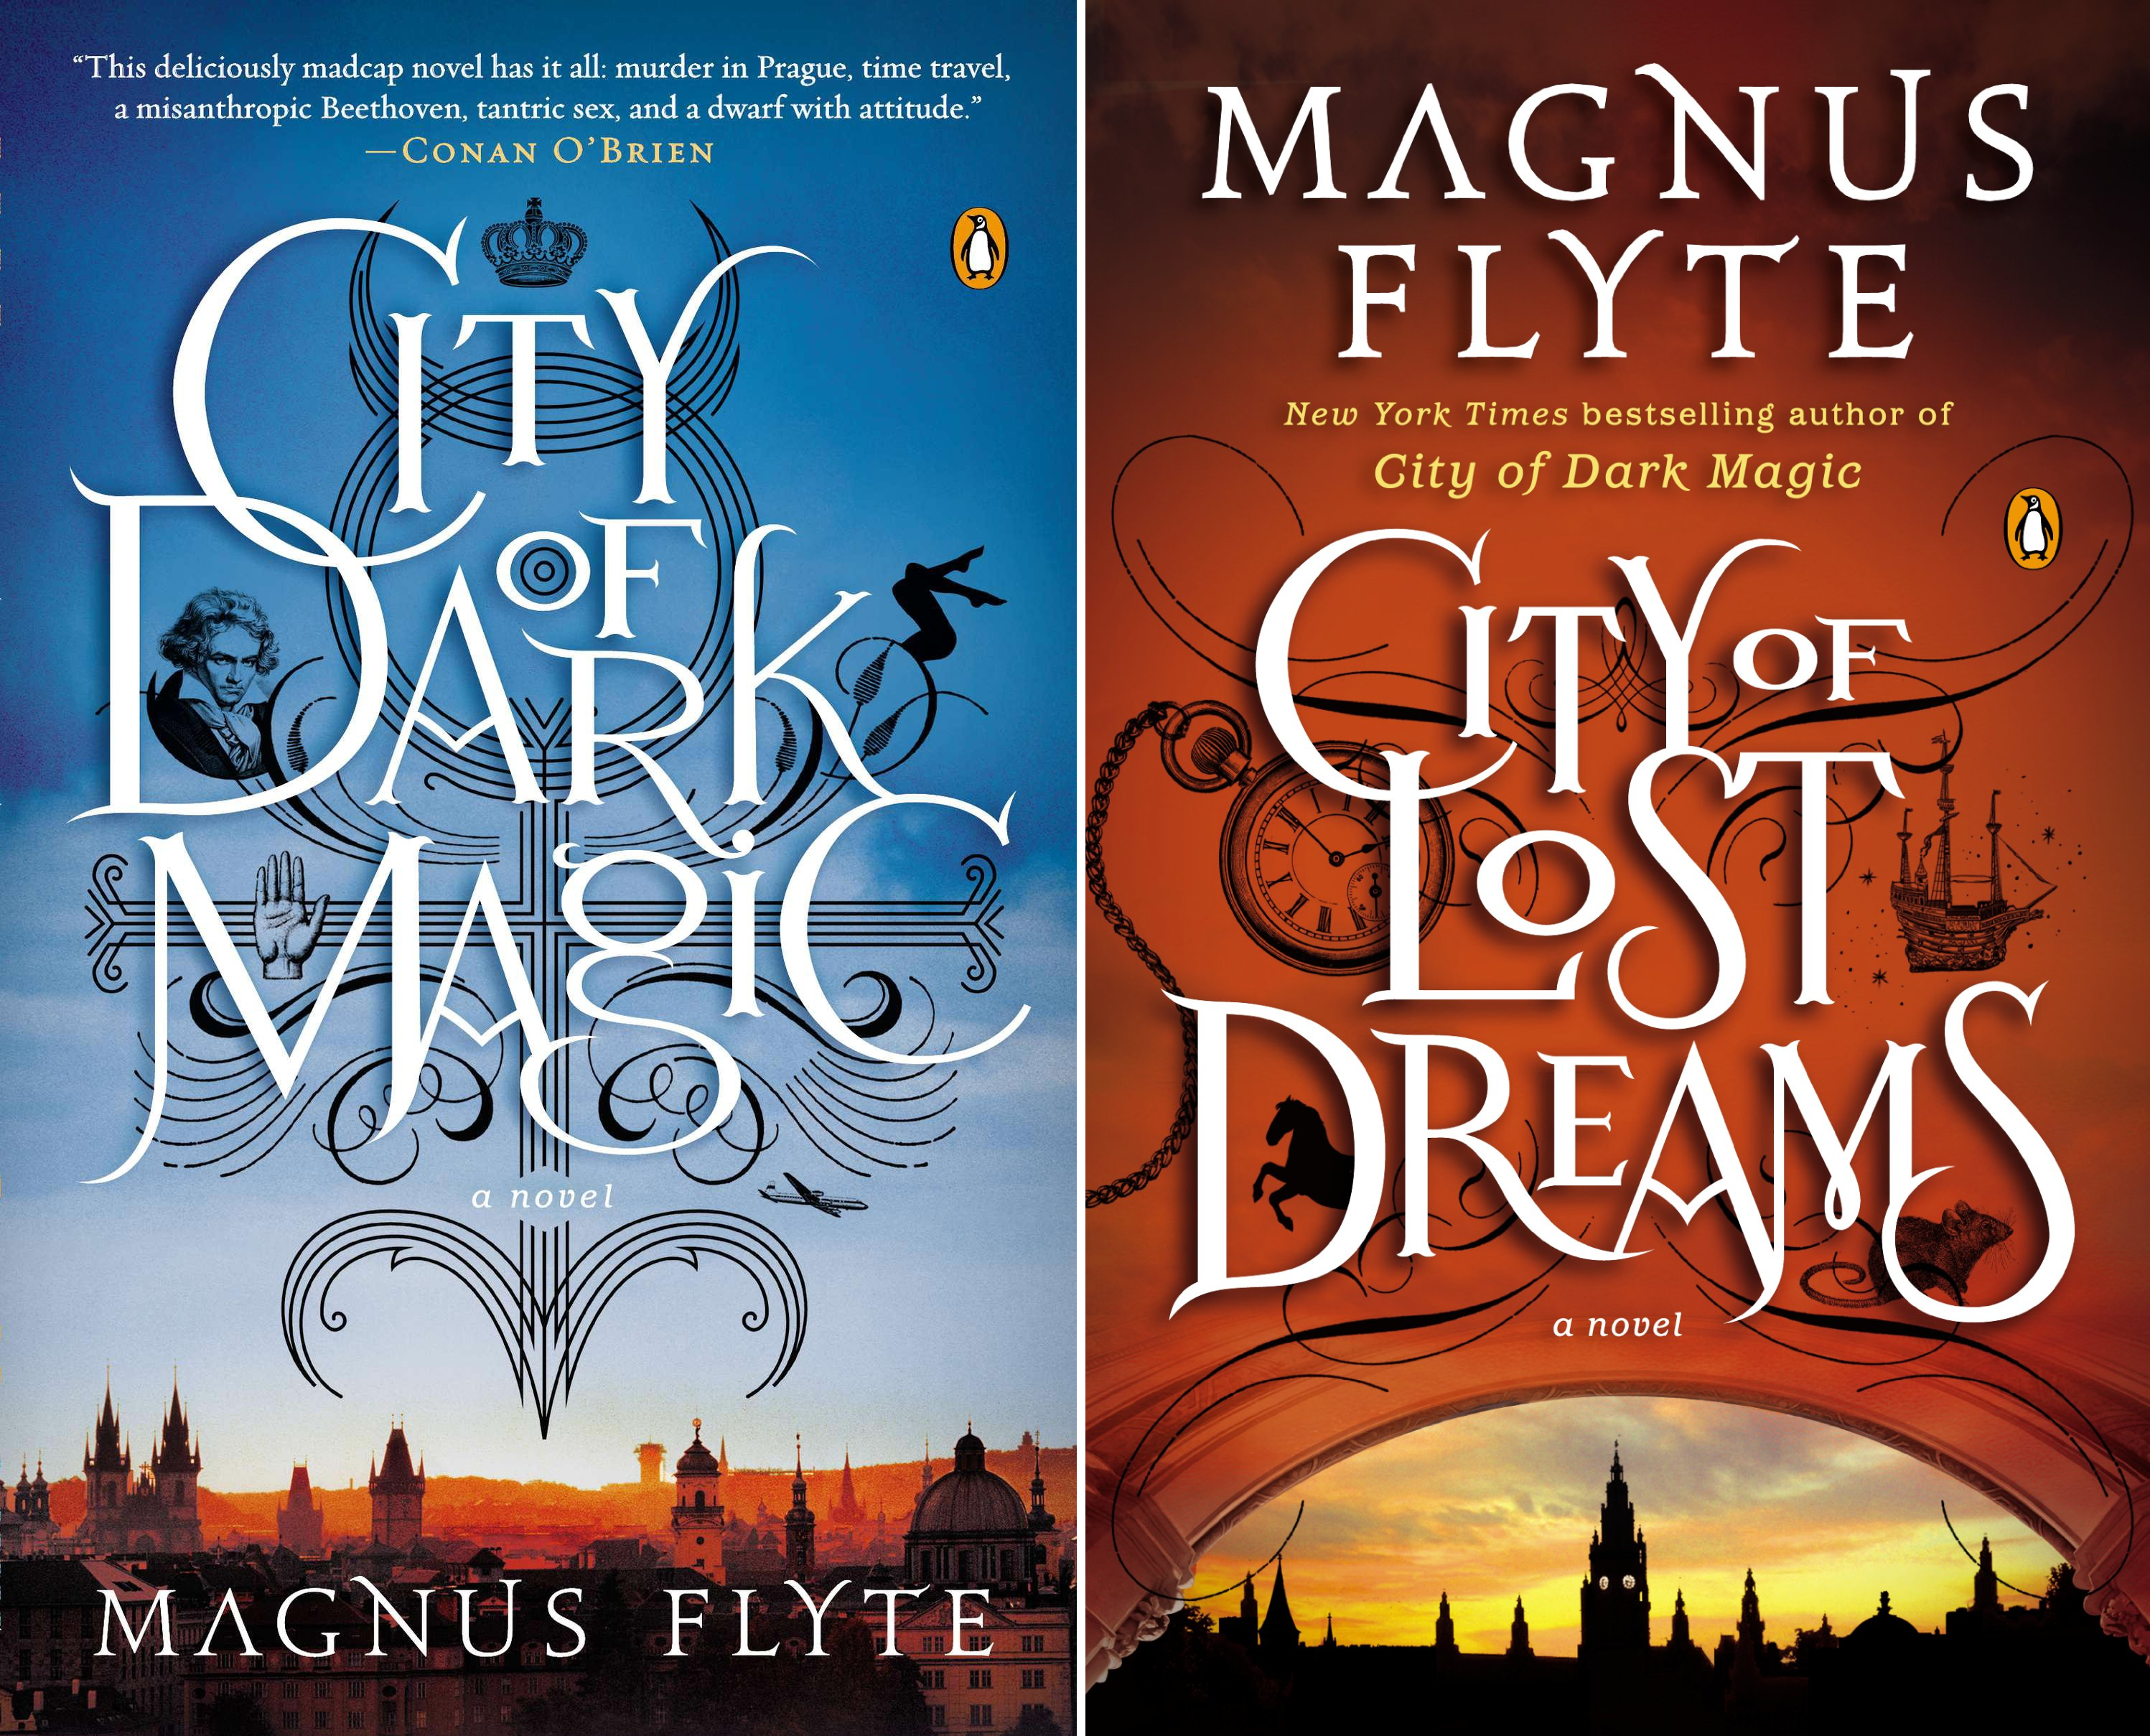 City of Dark Magic Series (2 Book Series)